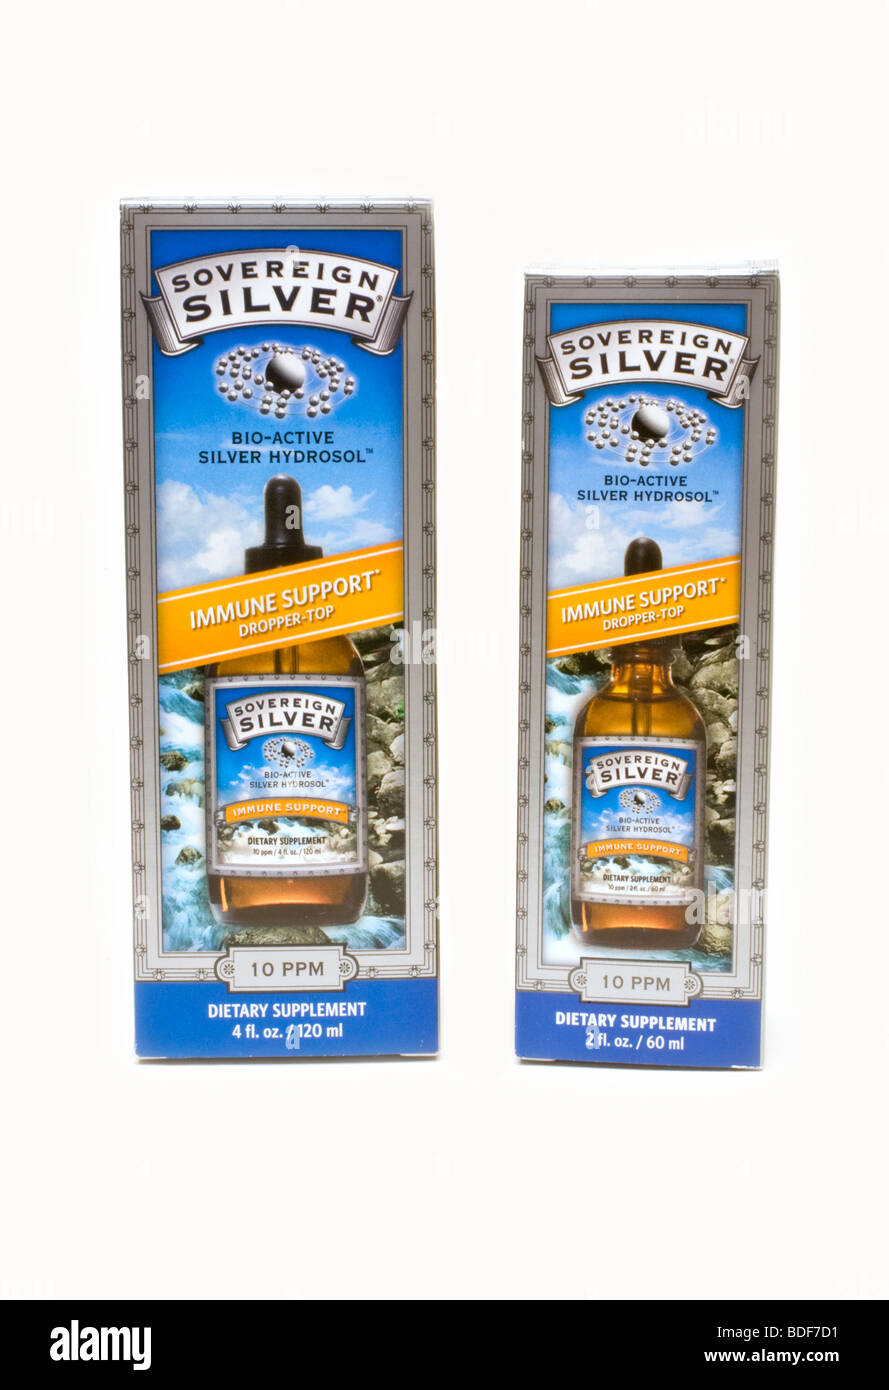 Bio-Active Silver Hydrosol Dietary supplement on white background - Stock Image